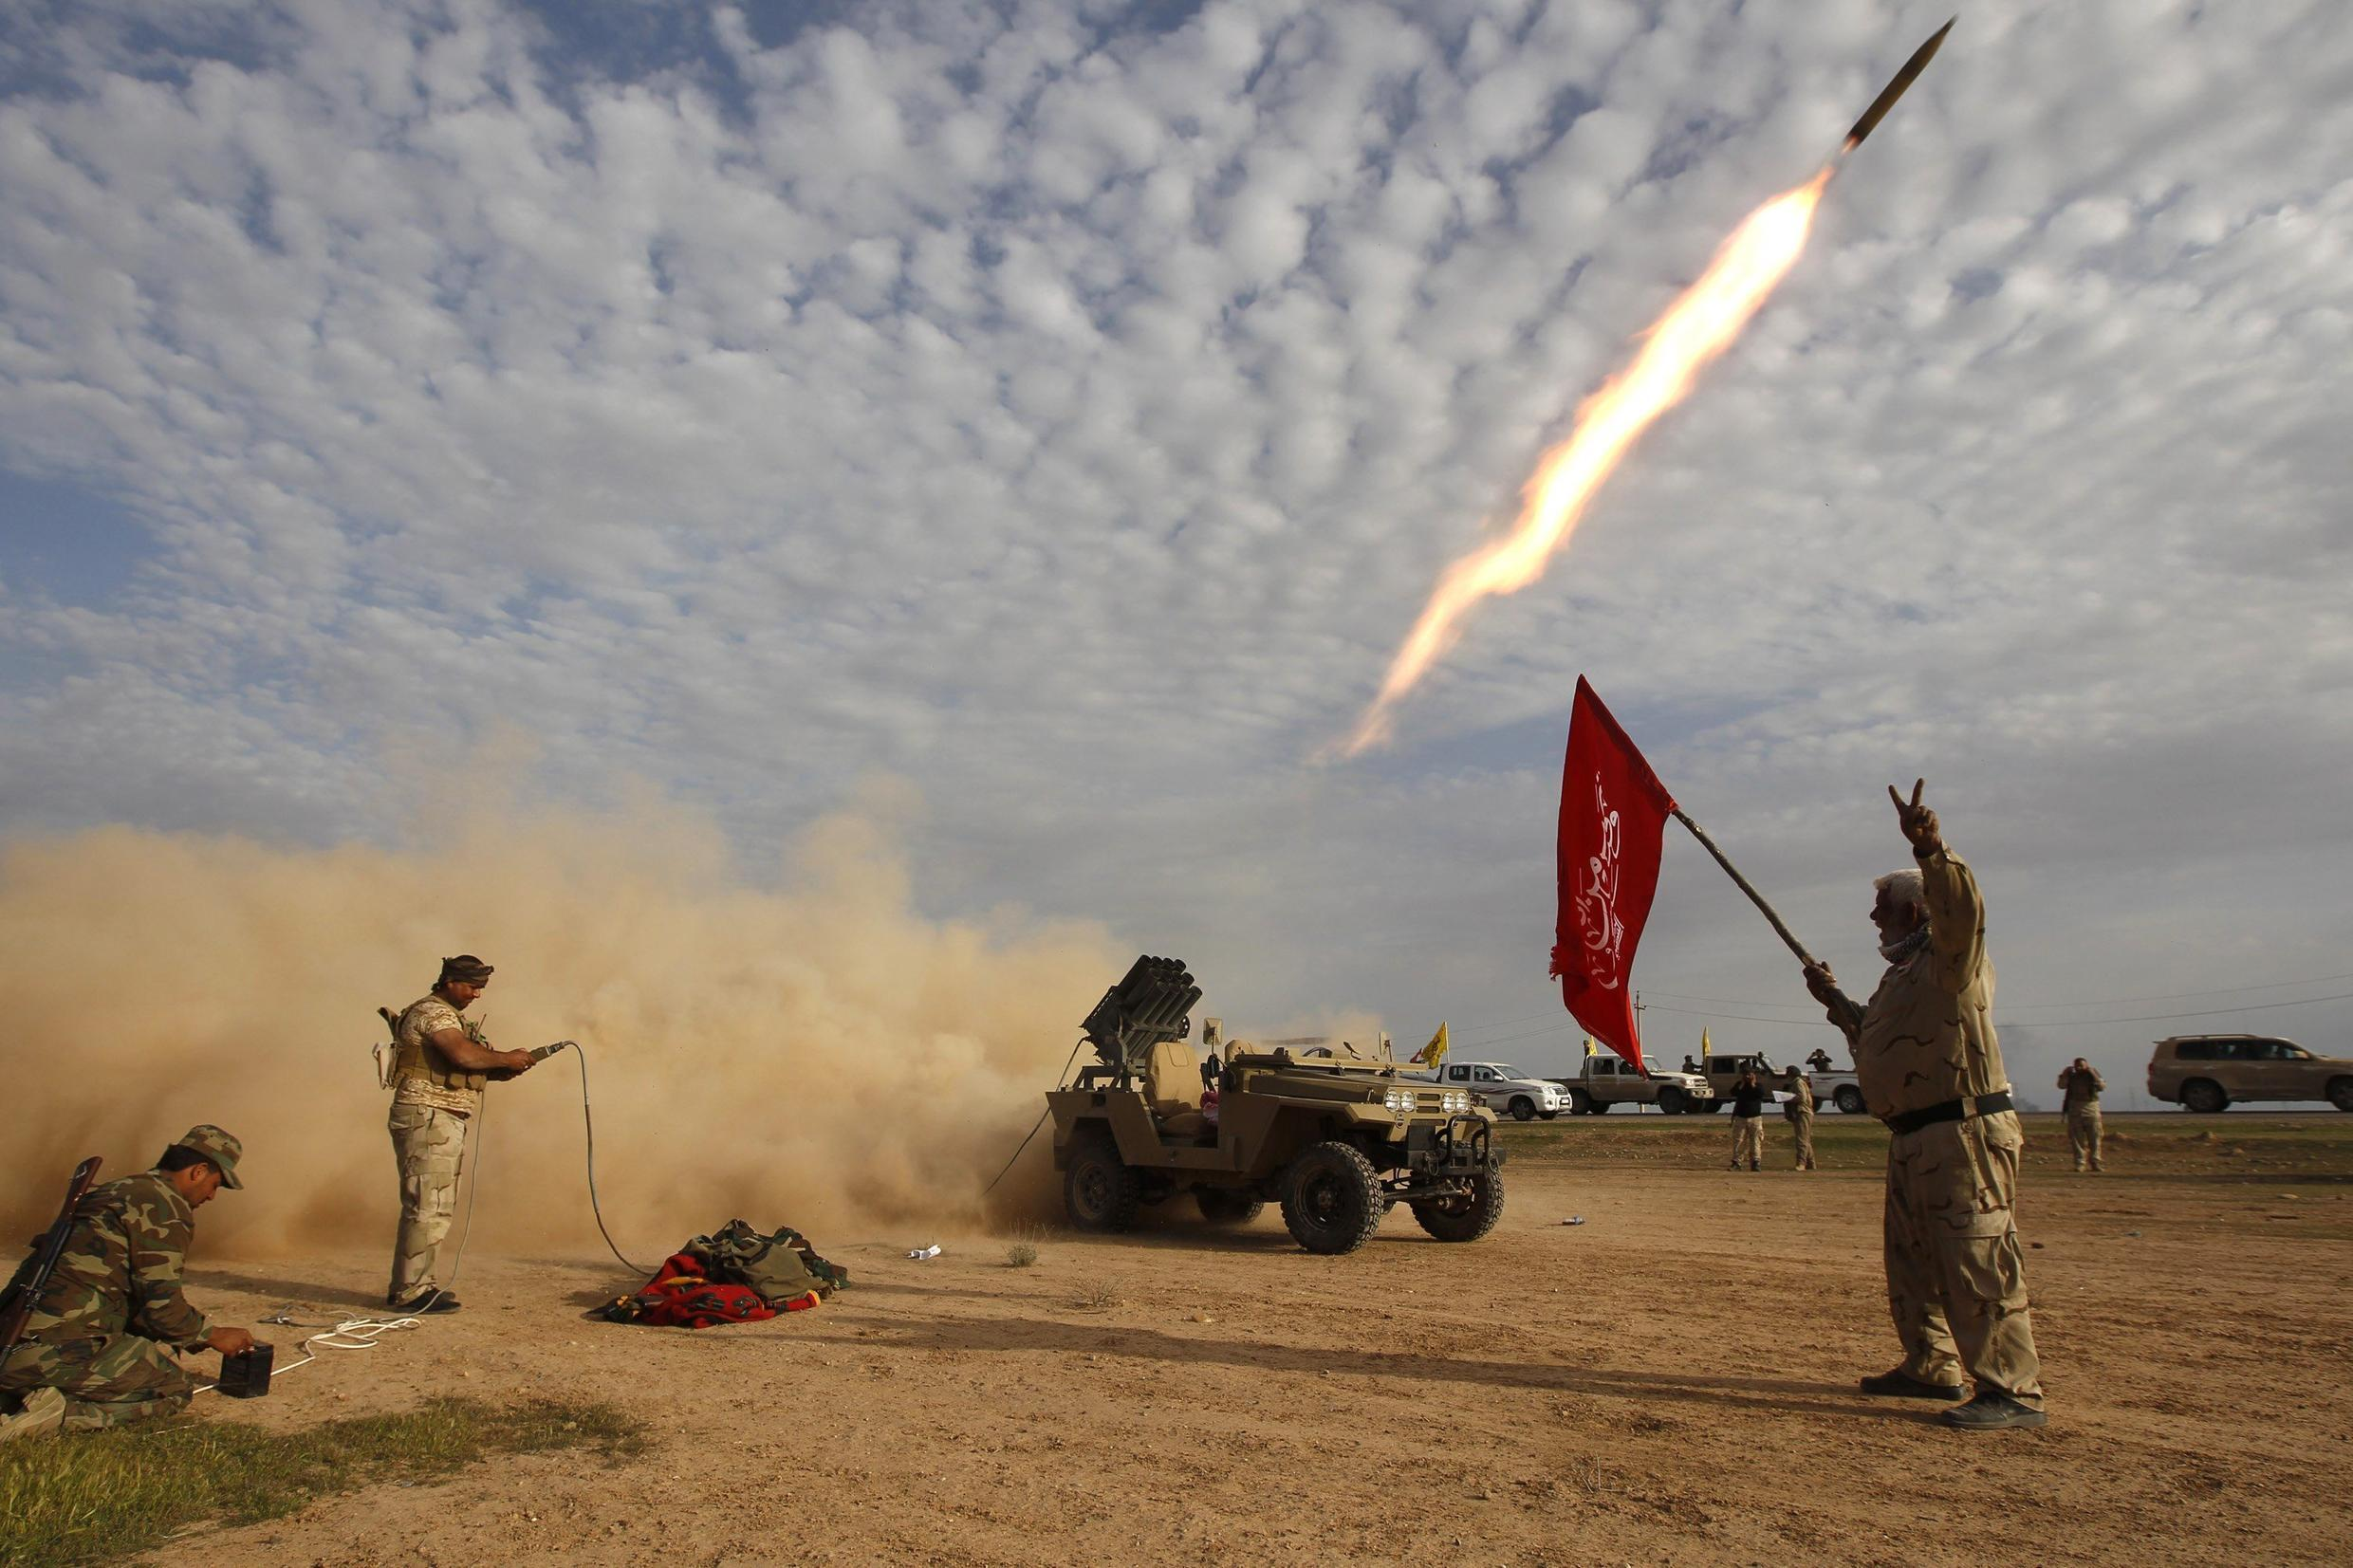 Shiite fighters launch a rocket during clashes with Islamic State militants on the outskirts of al-Alam March 8, 2015.